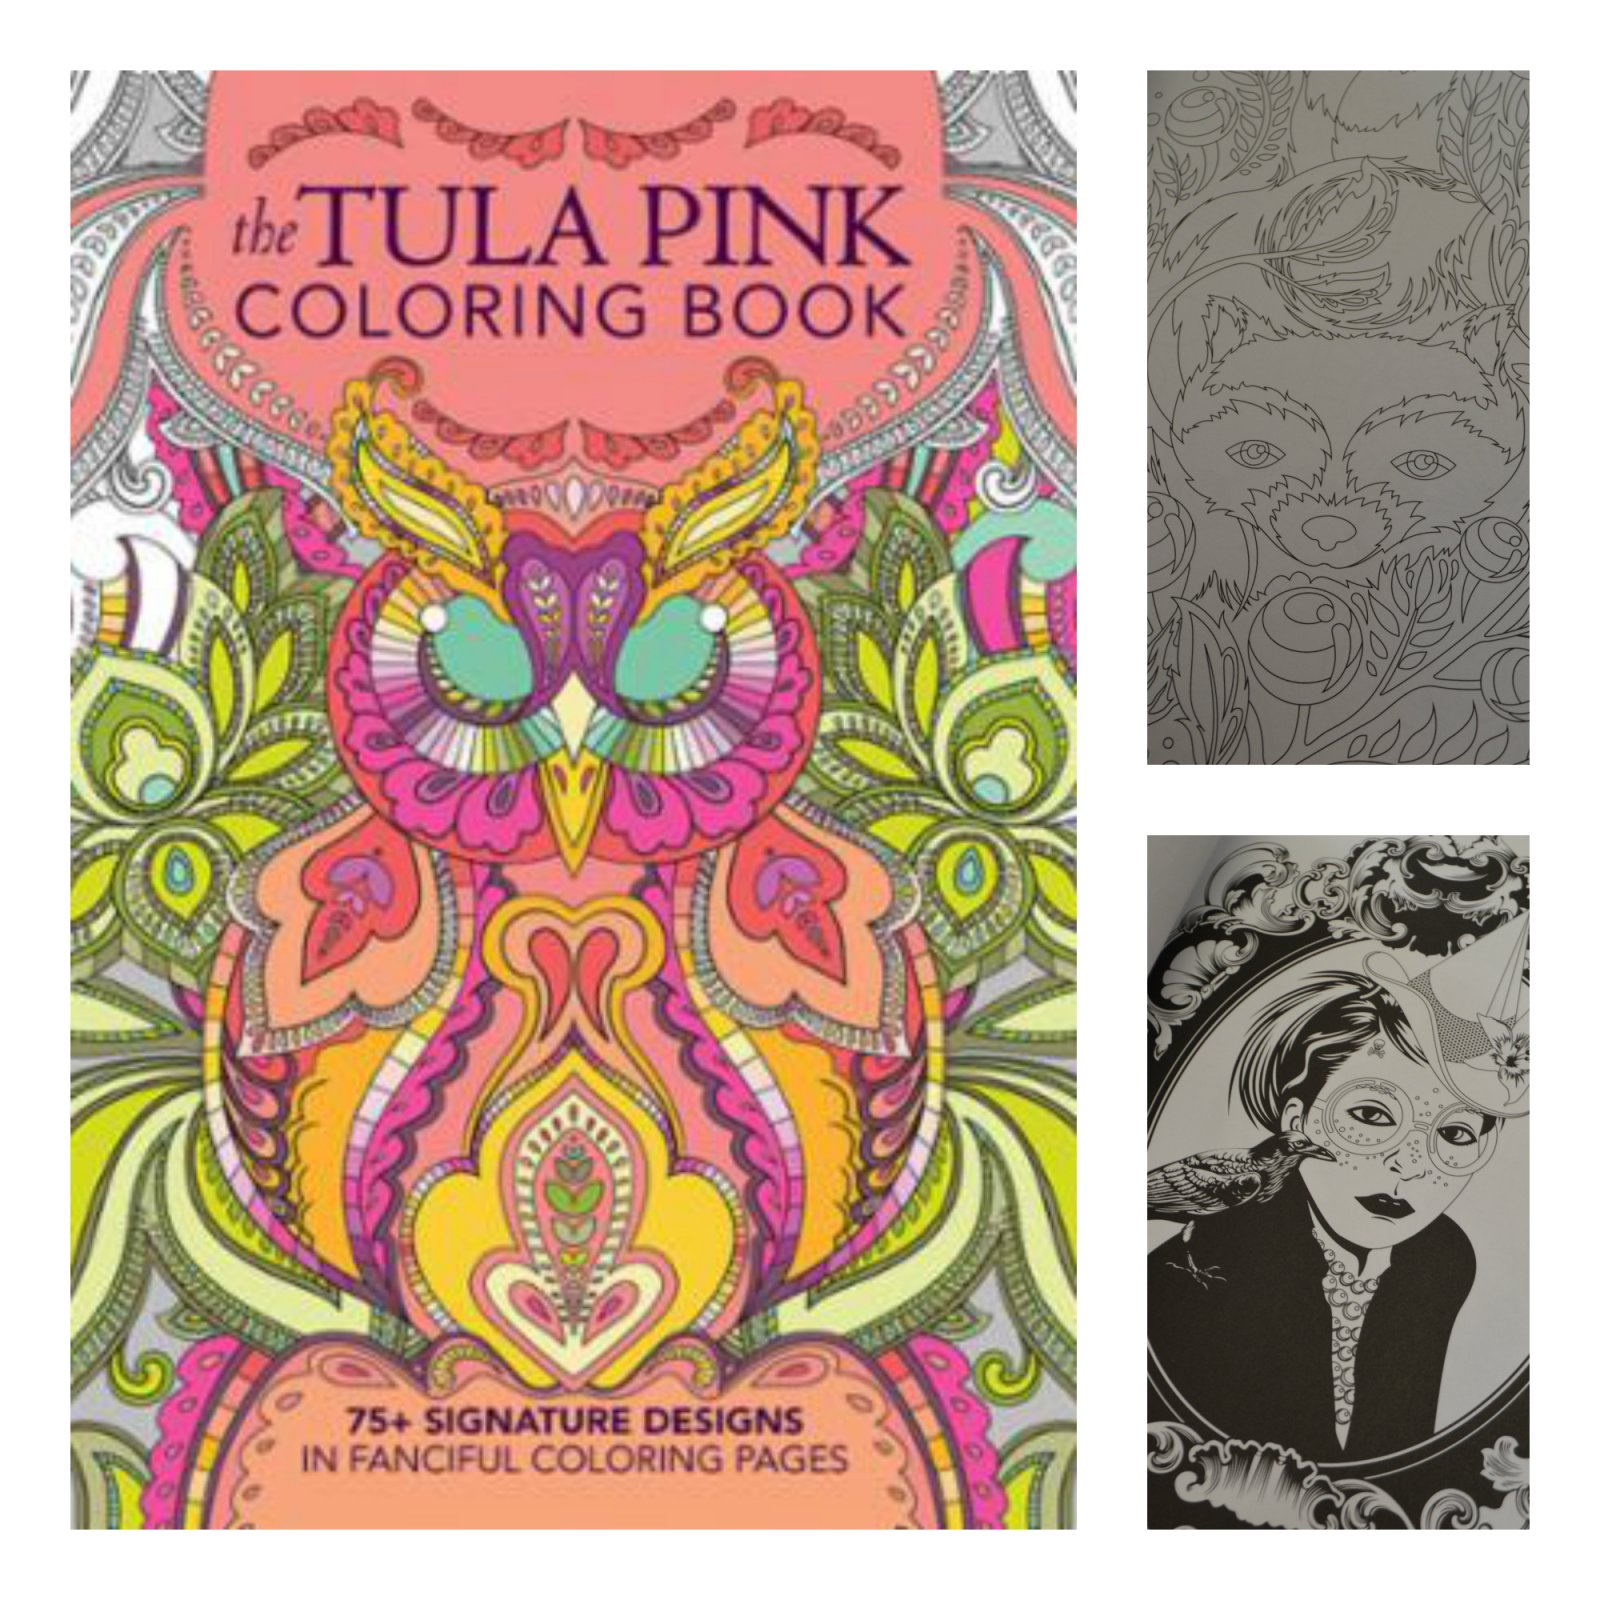 The tula pink coloring book - The Tula Pink Coloring Book